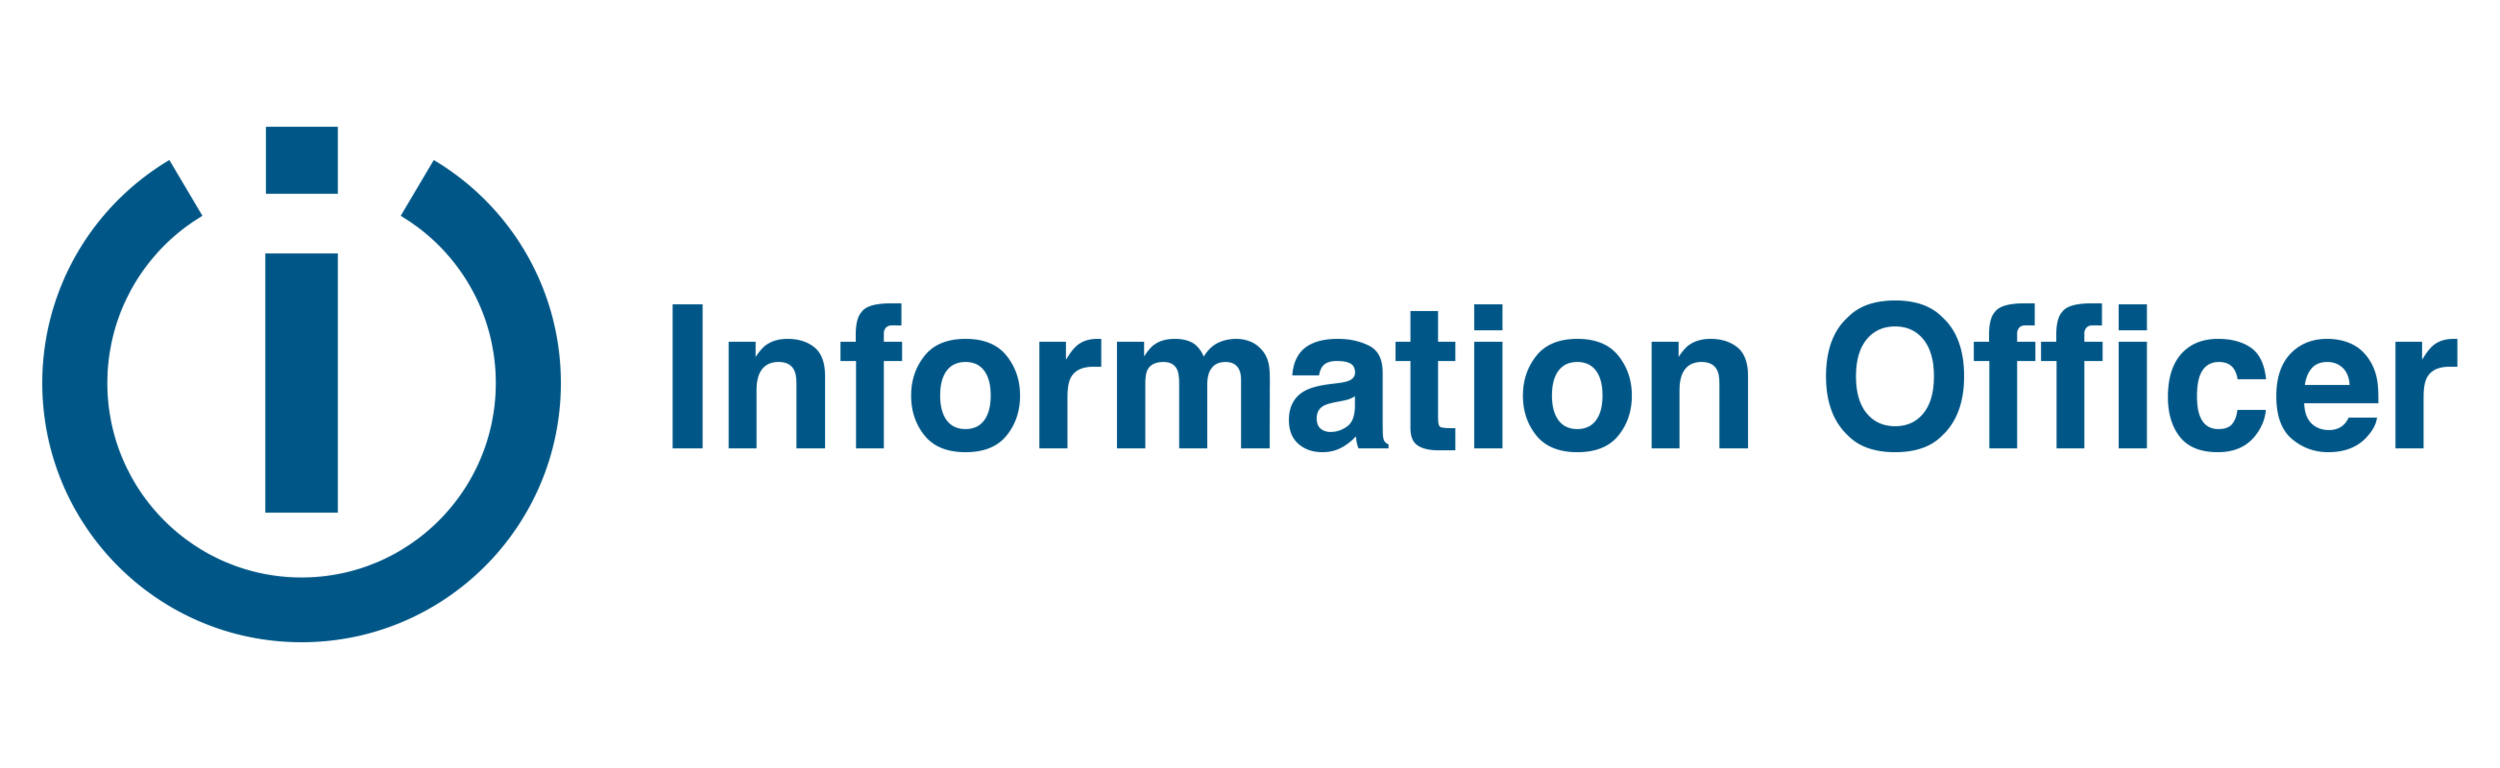 Information Officer, Singapore